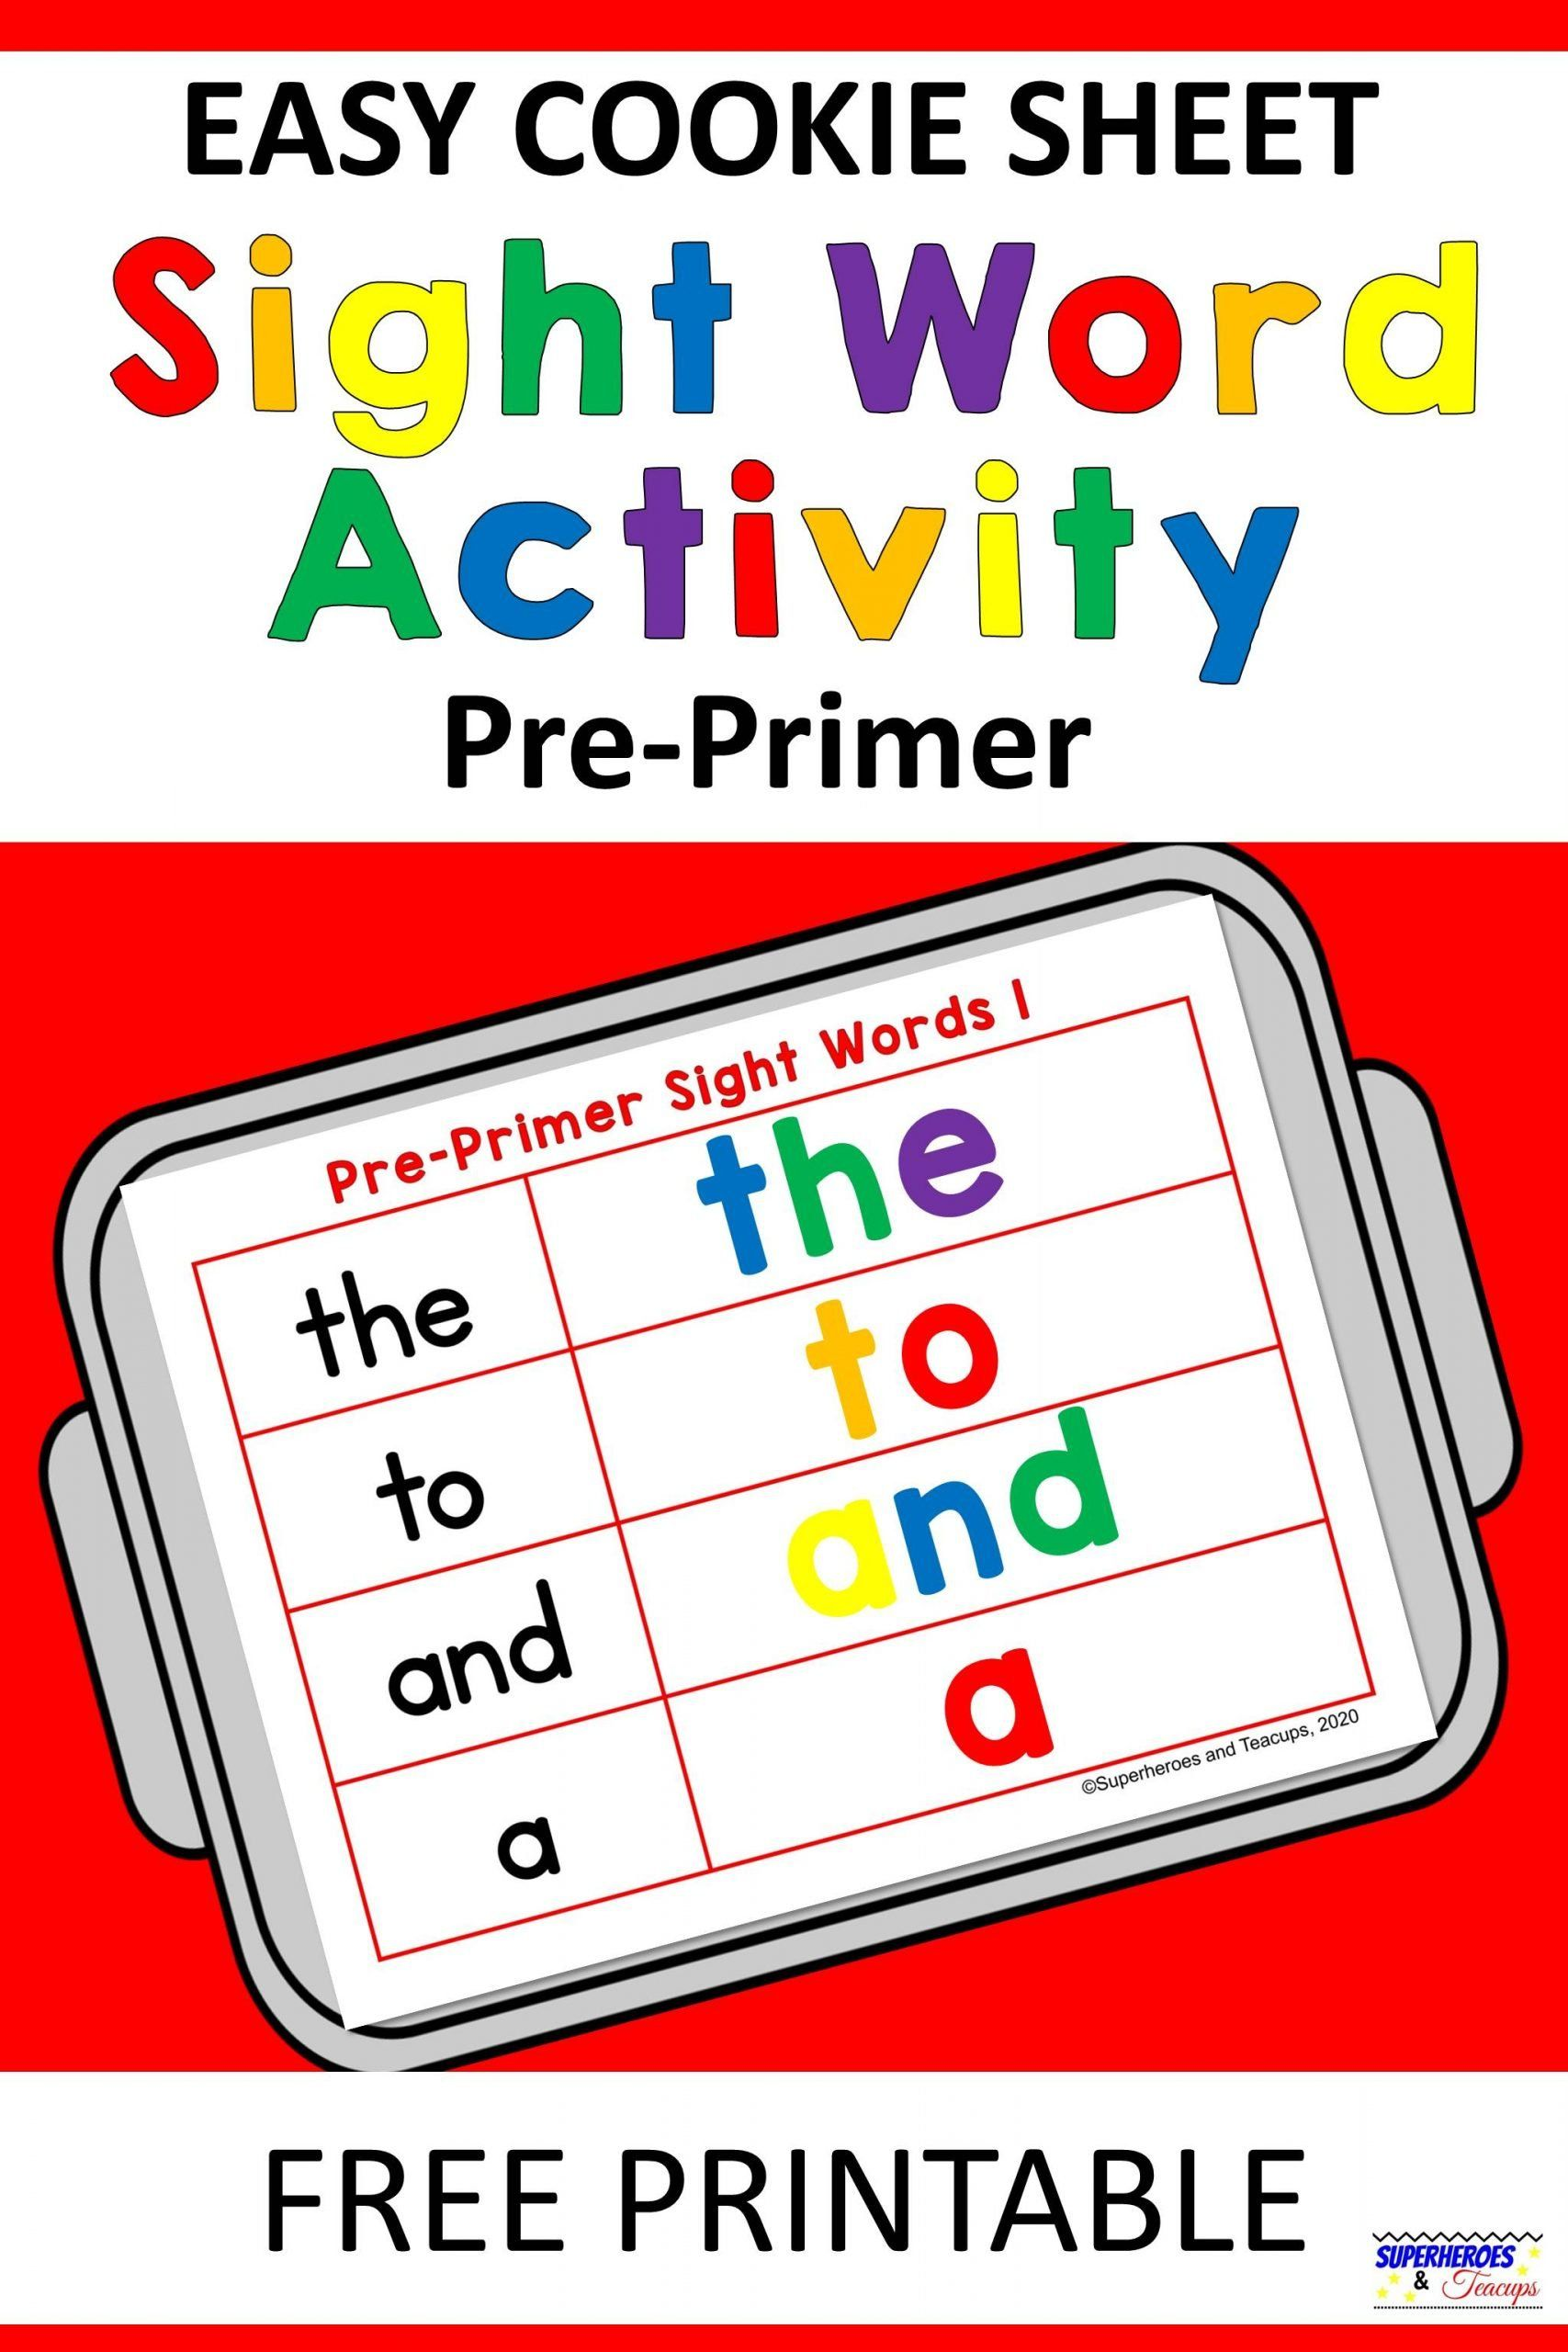 Easy Cookie Sheet Pre Primer Sight Word Activity